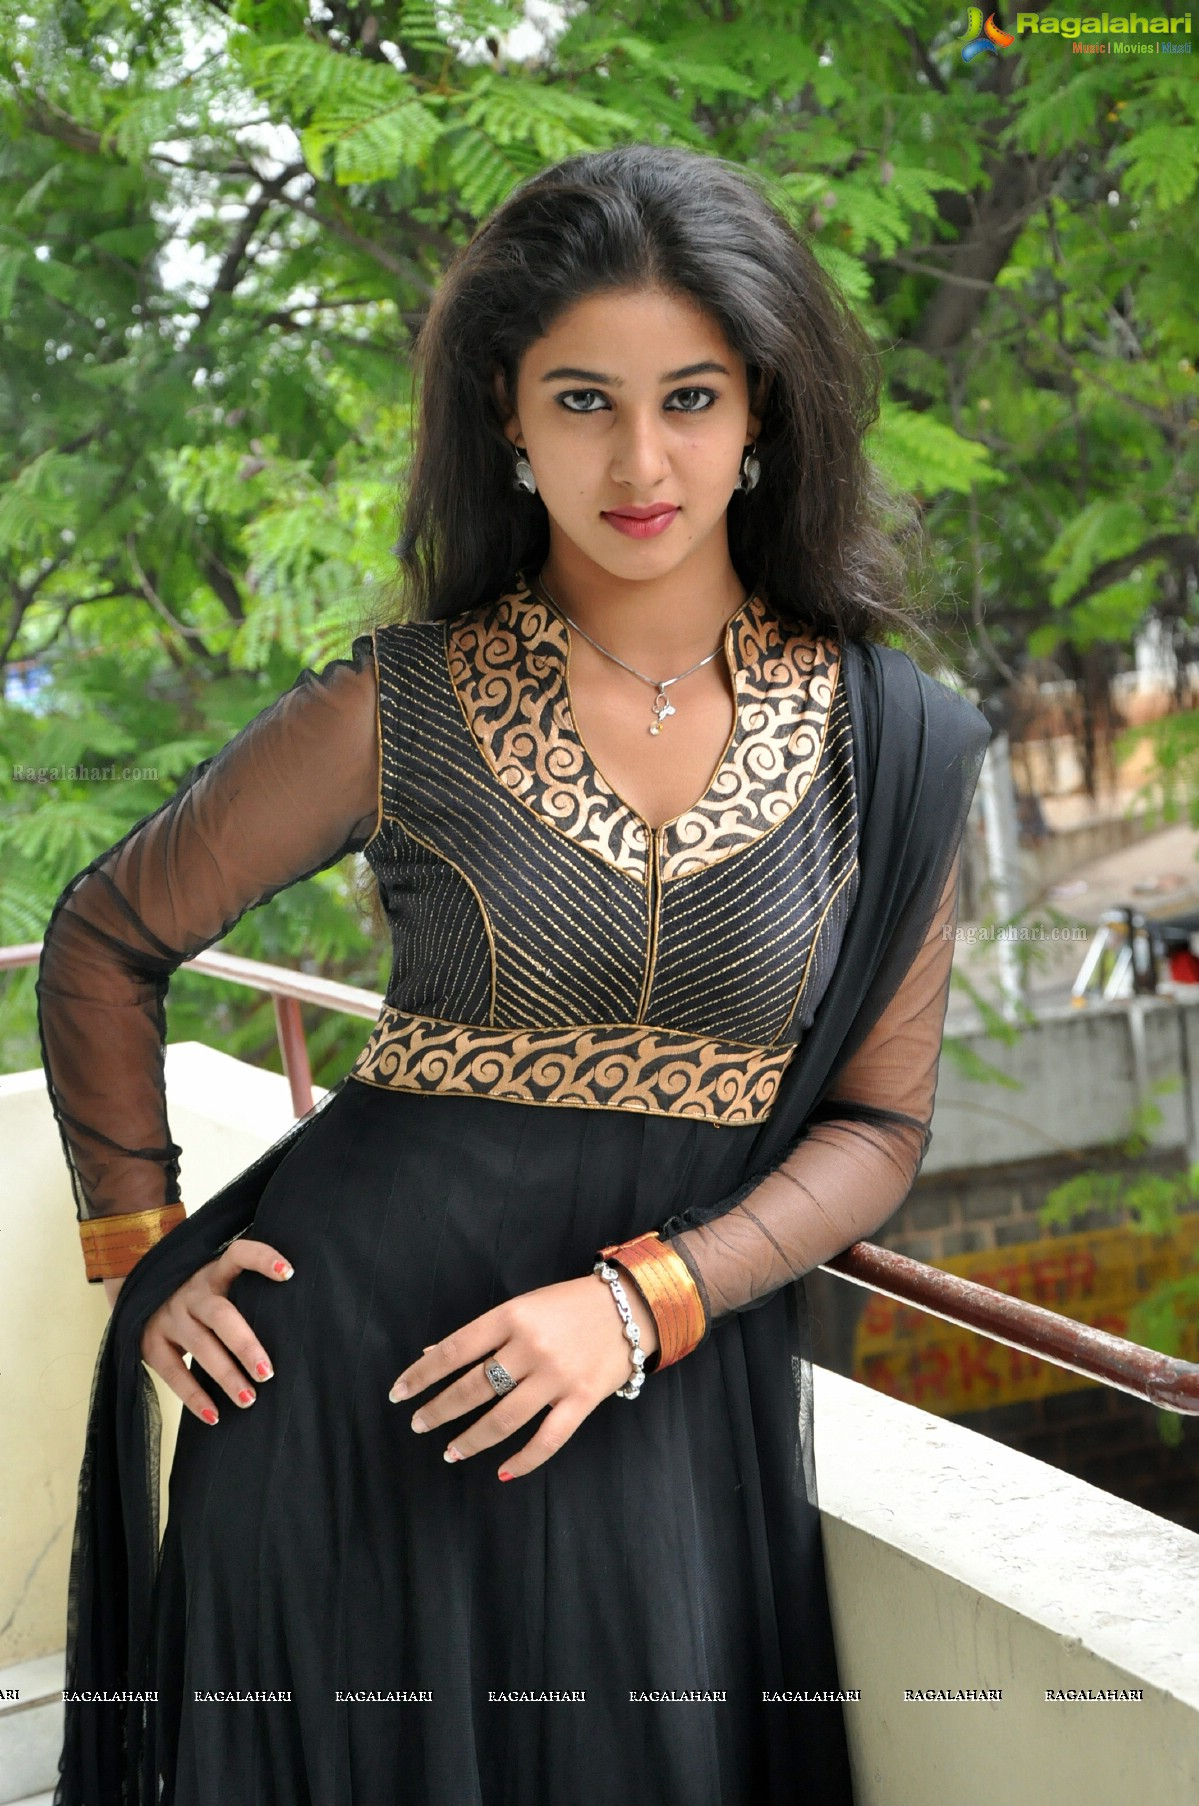 Pavani Reddy Image 46 Telugu Actress Photos Images